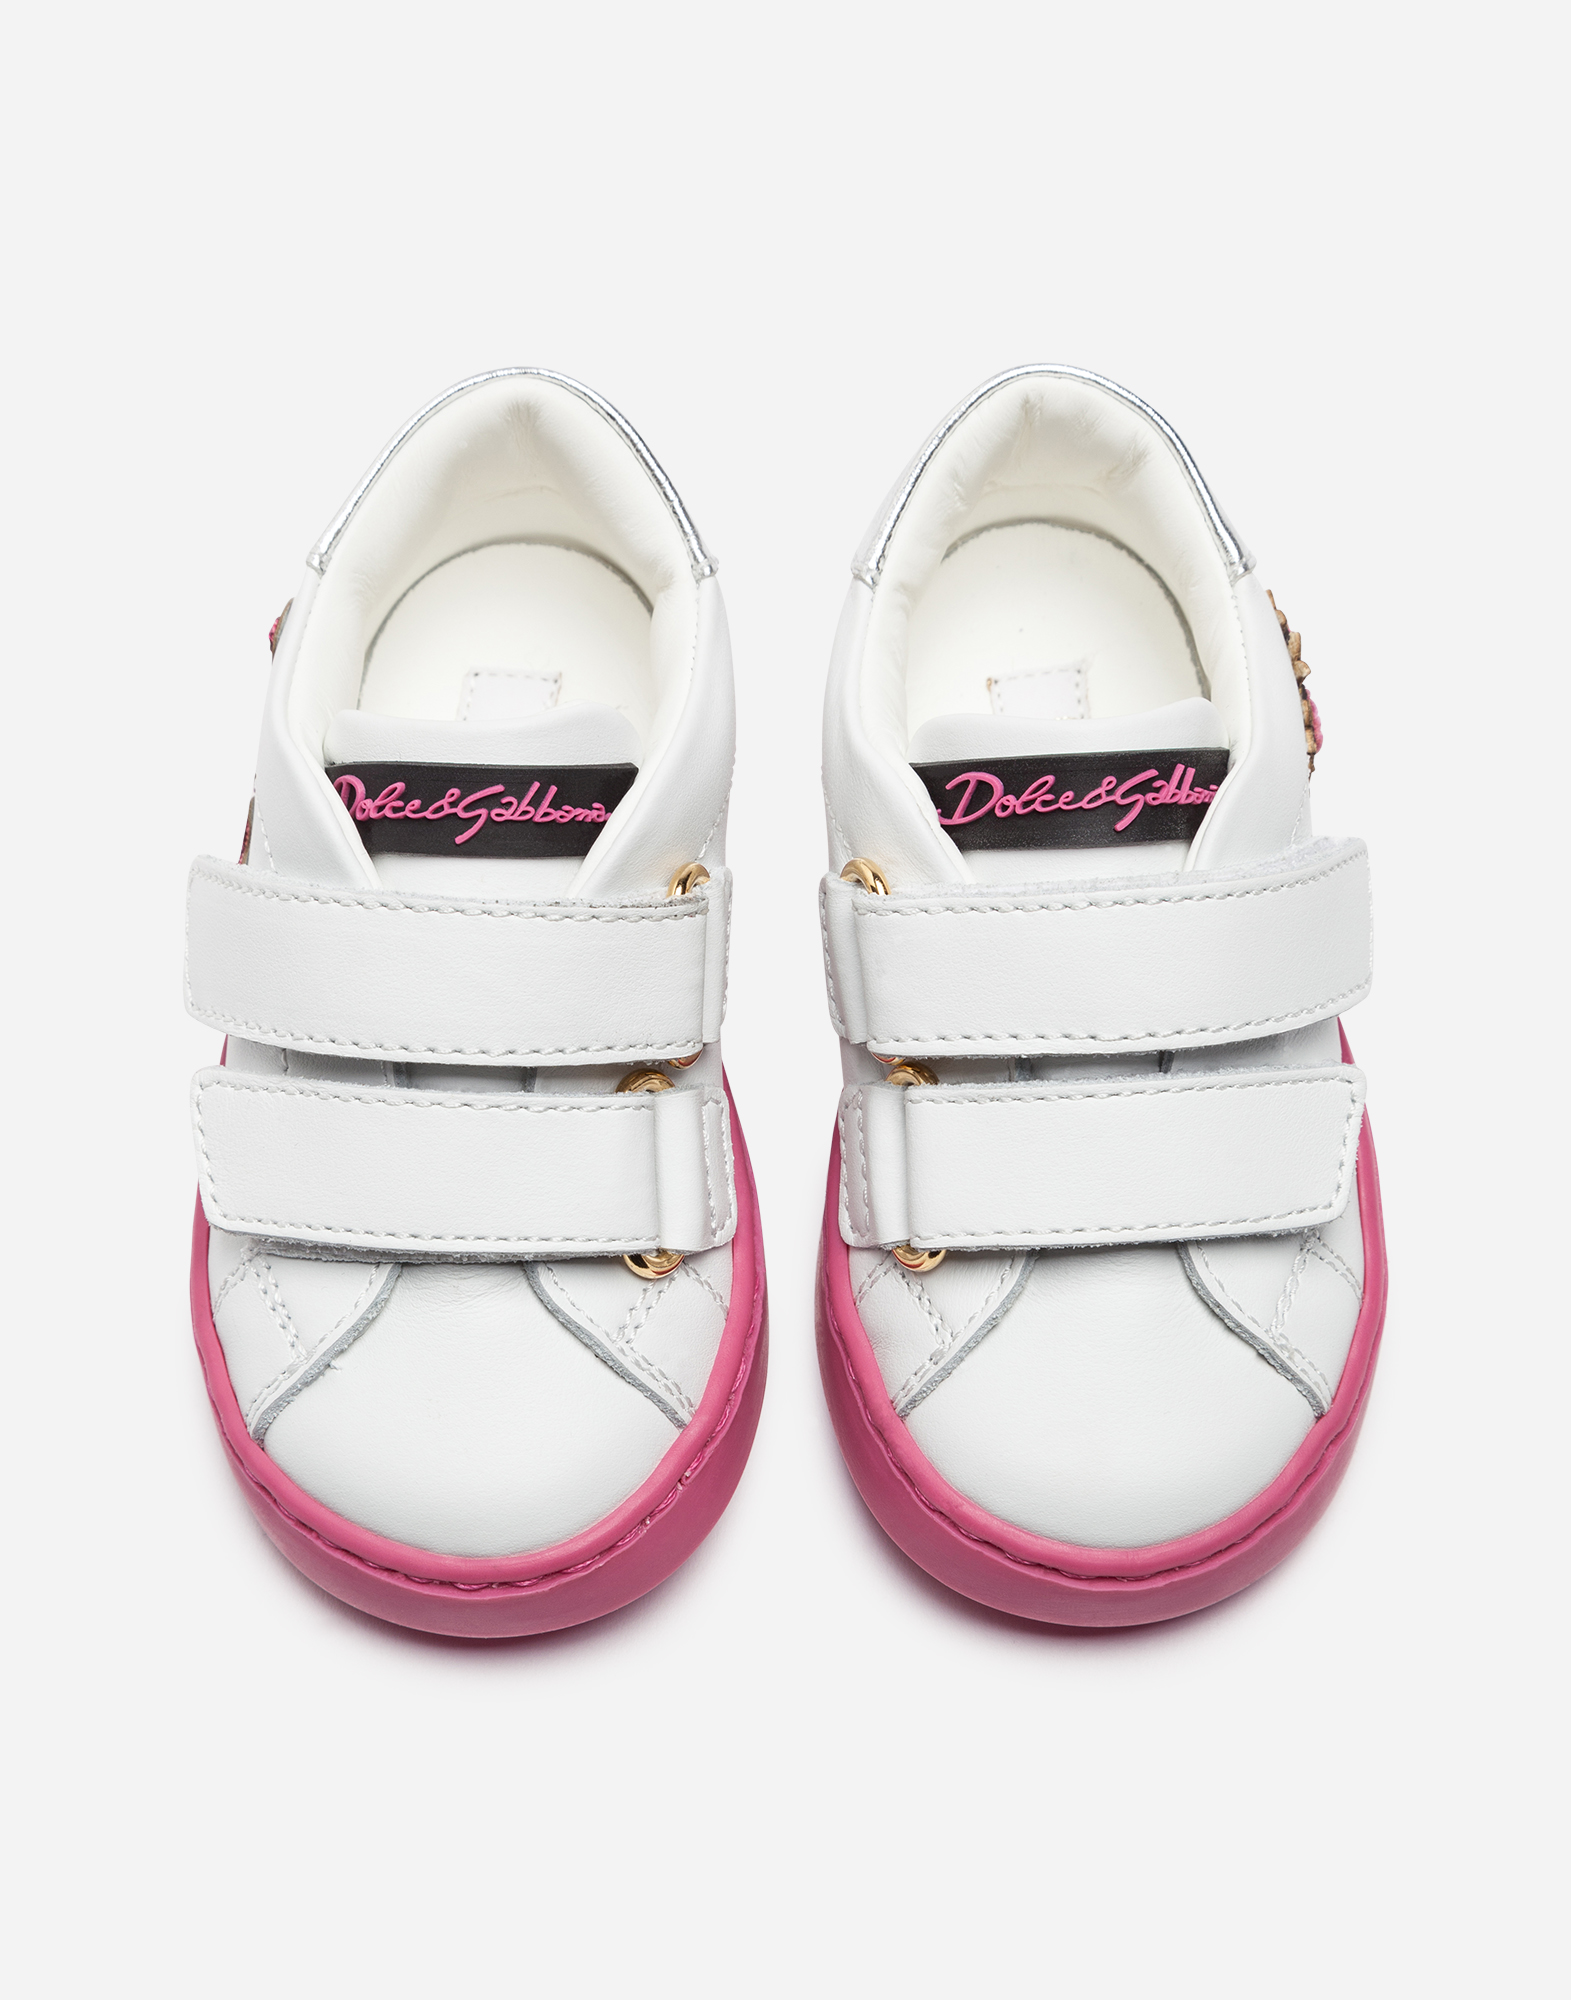 Dolce & Gabbana FIRST STEPS LEATHER SNEAKERS WITH PATCHES